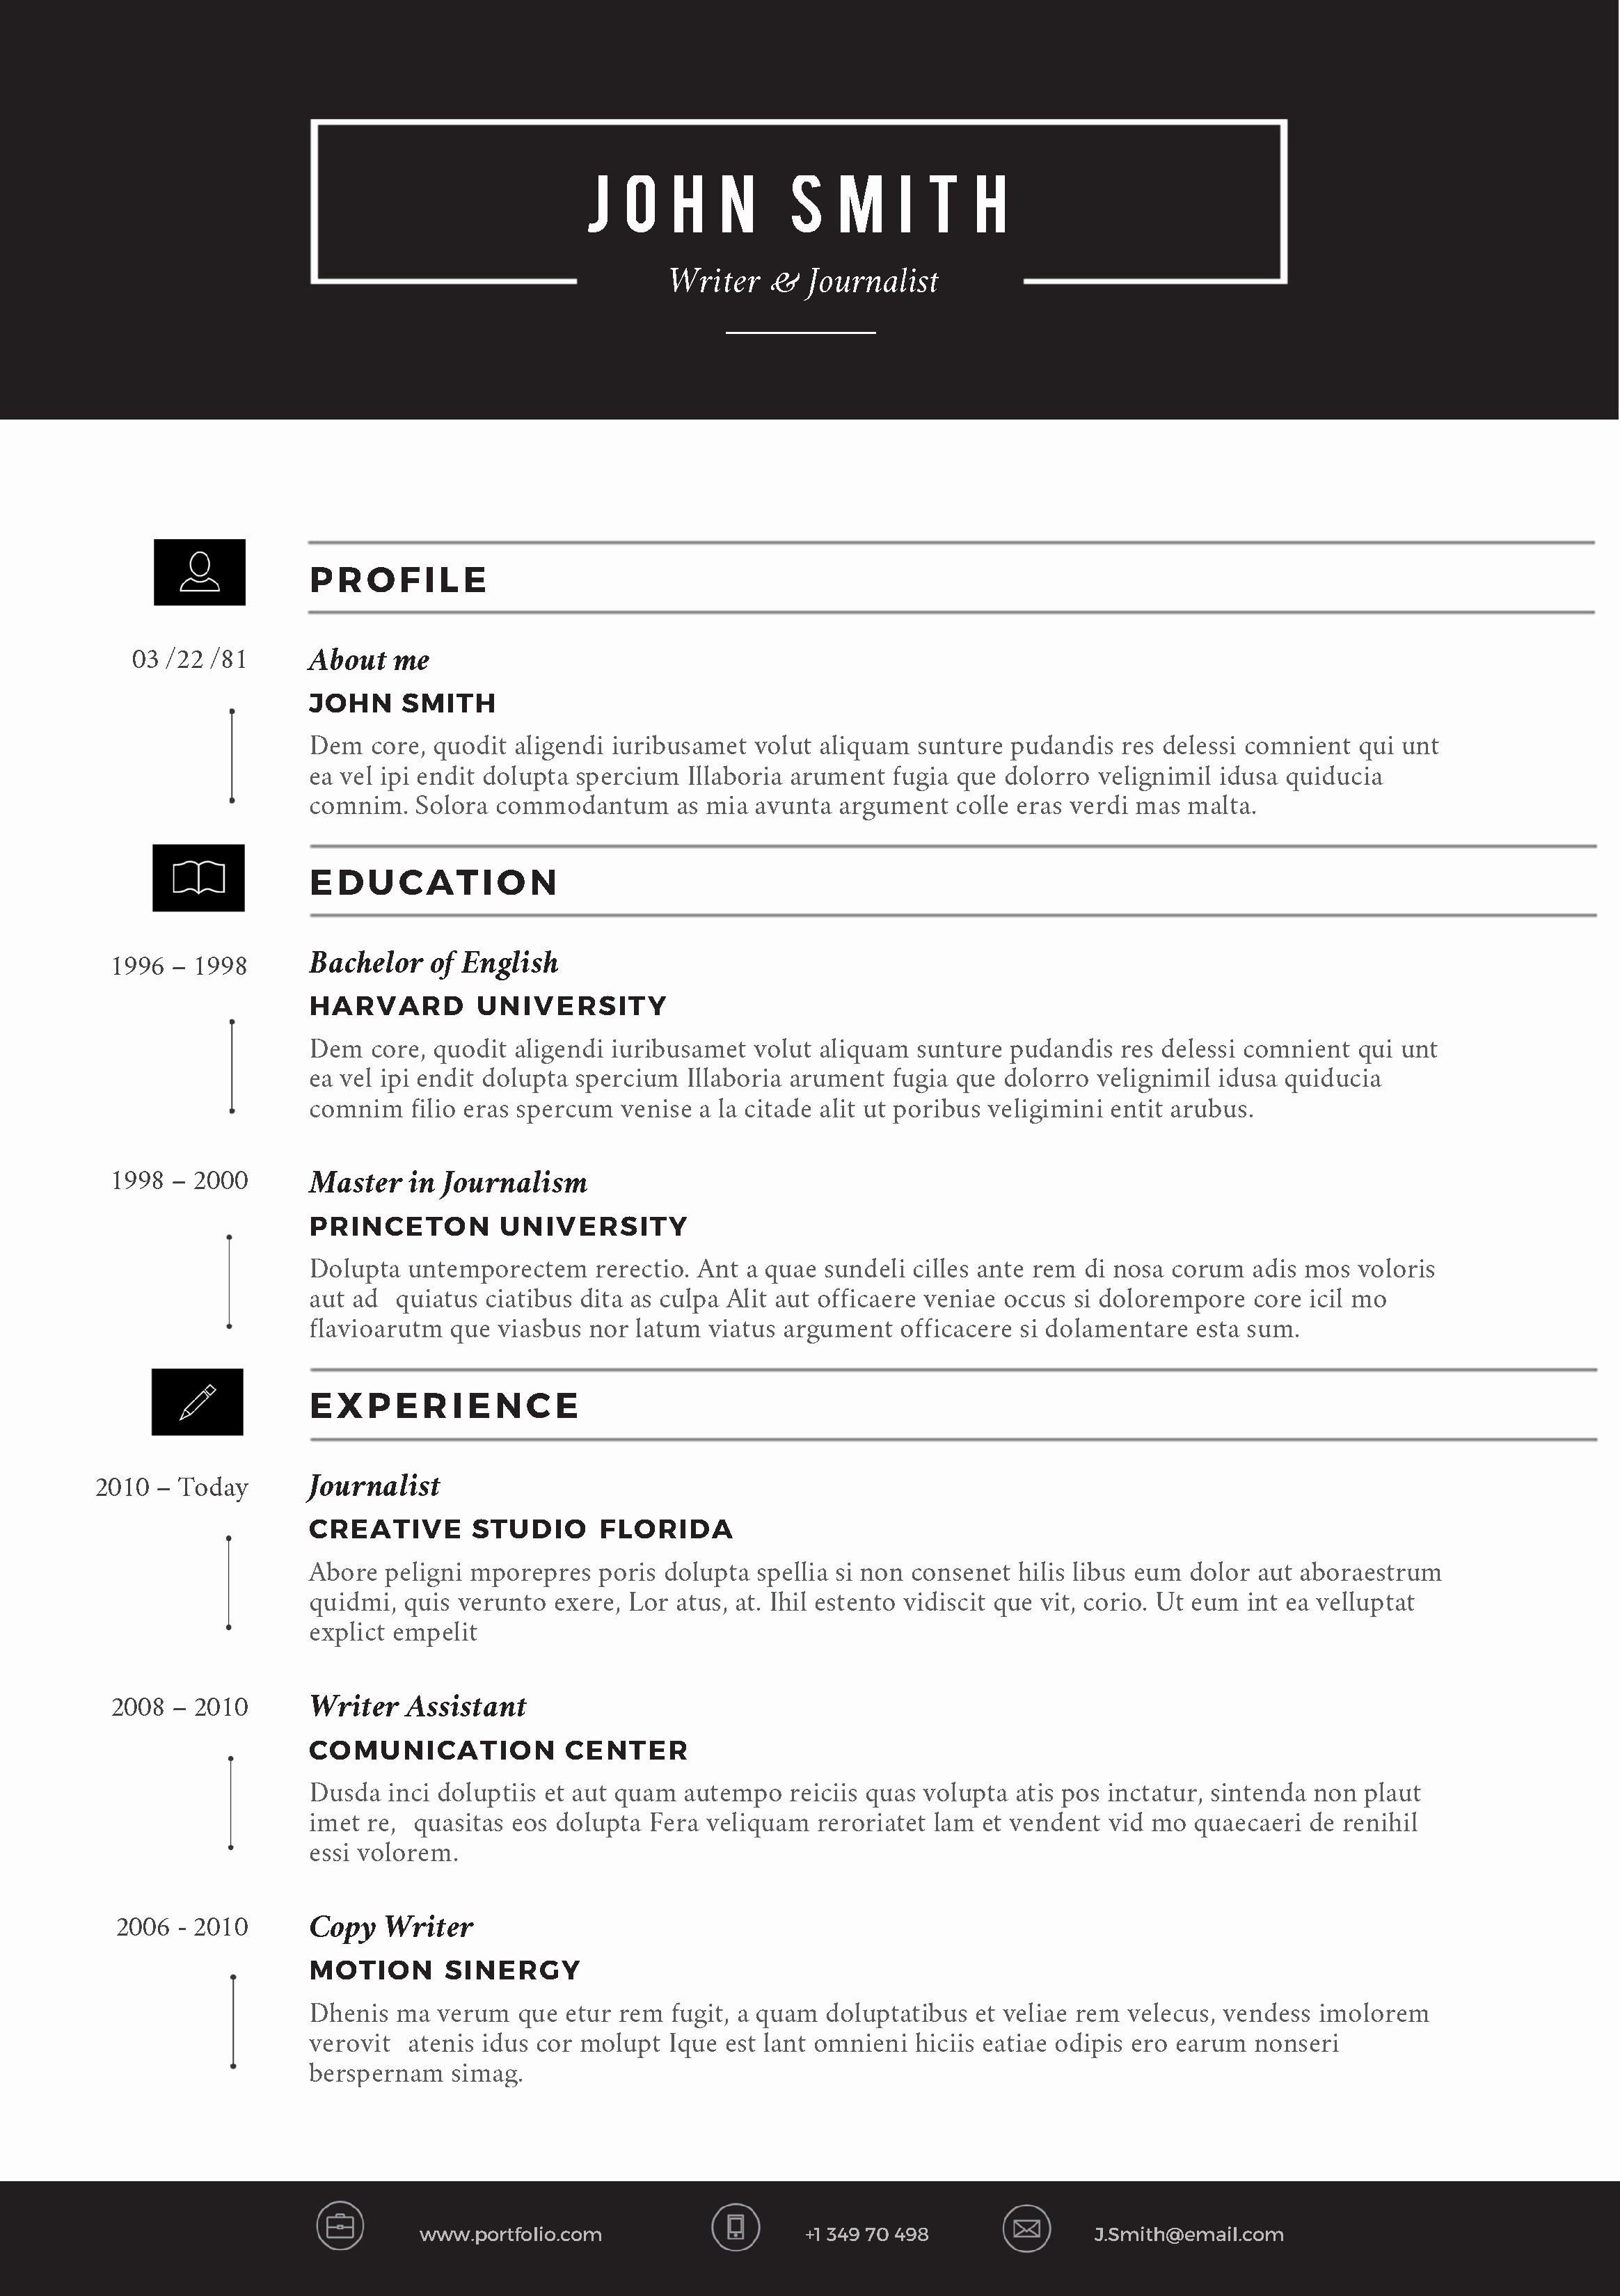 Professional Resume Template Microsoft Word Lovely Creative Resume Template by Cvfolio Resumes